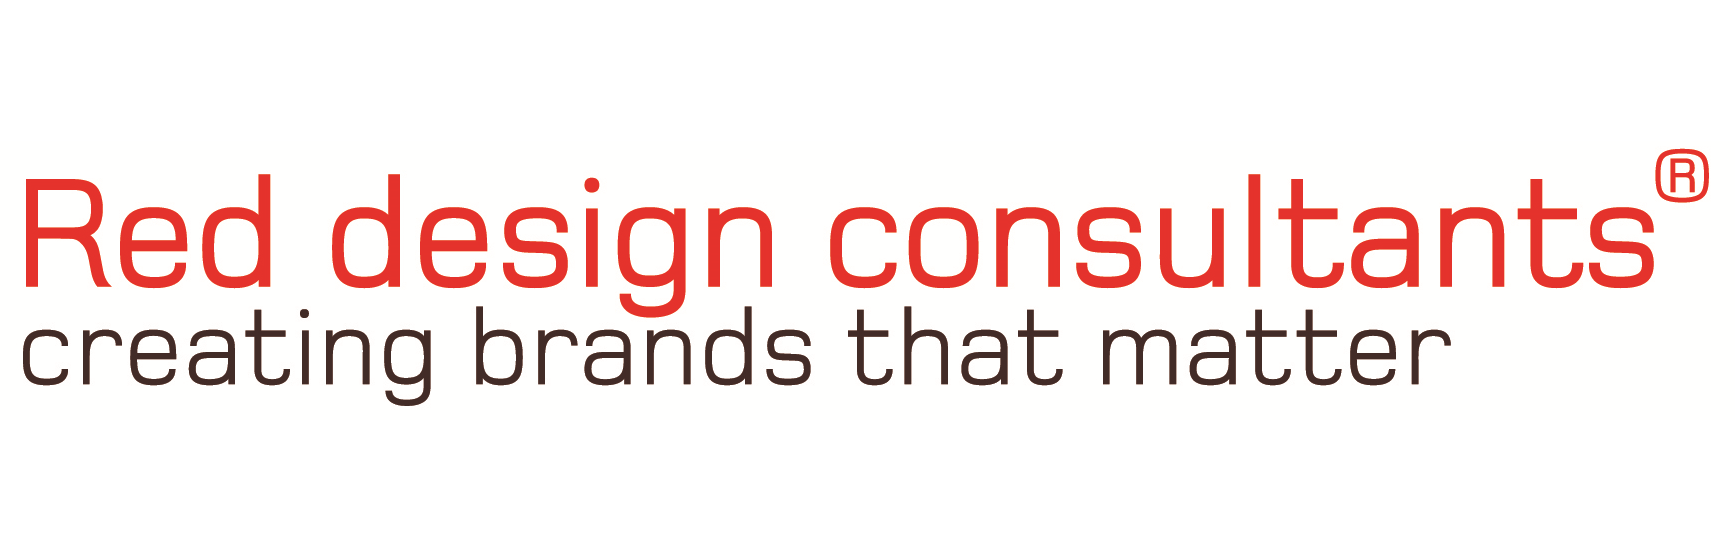 Red design consultants